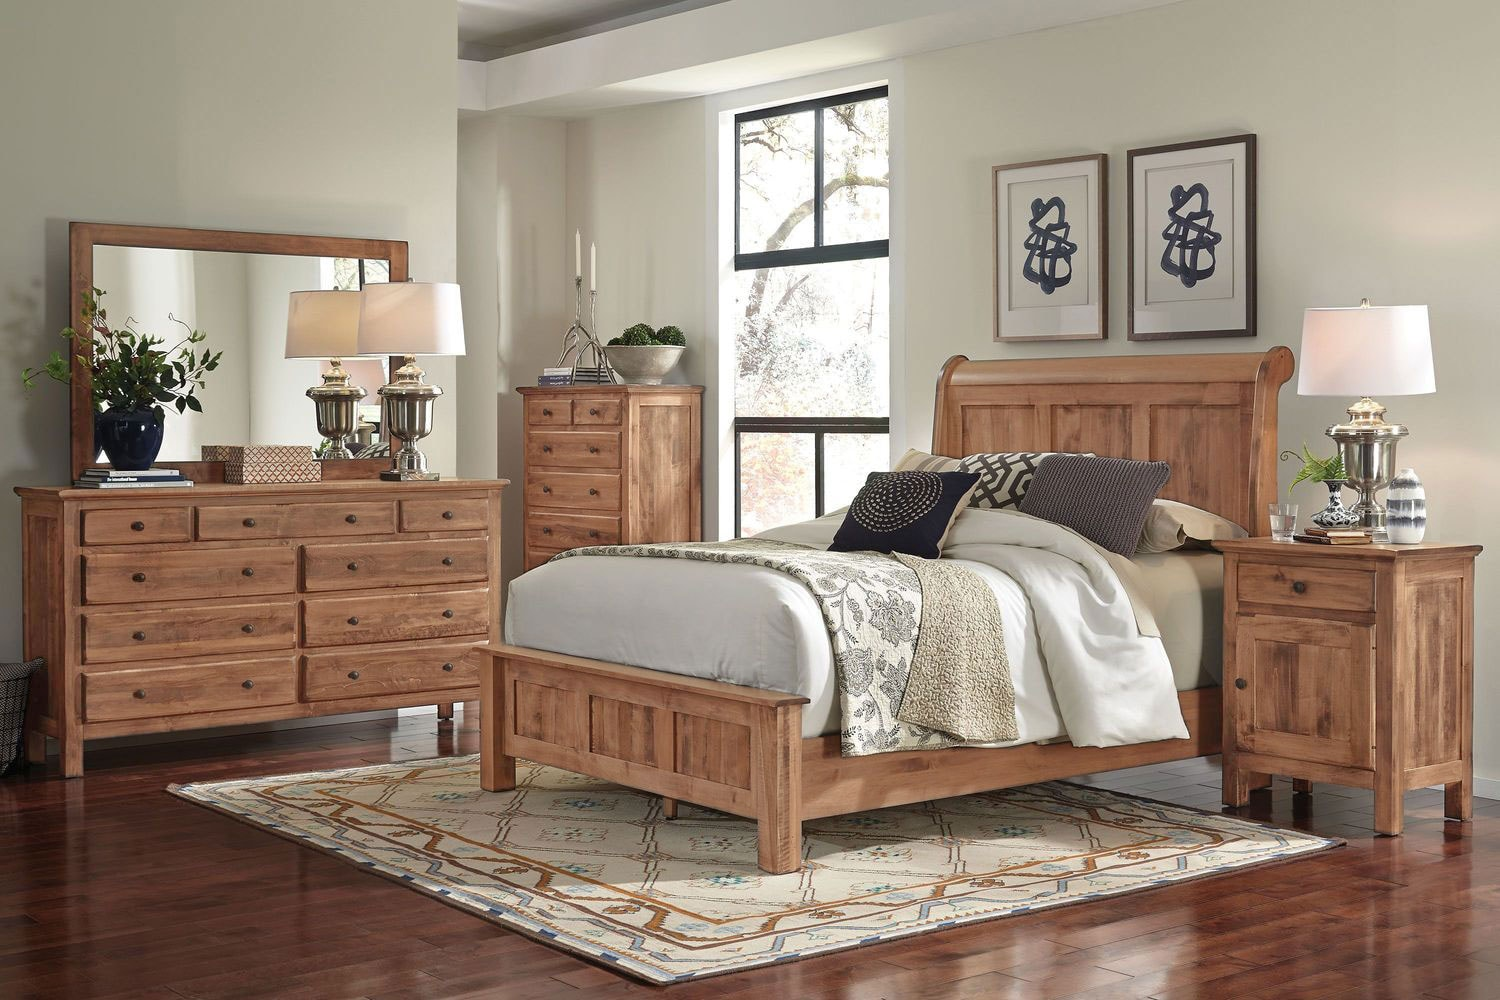 Lewiston 4 Piece King Bedroom